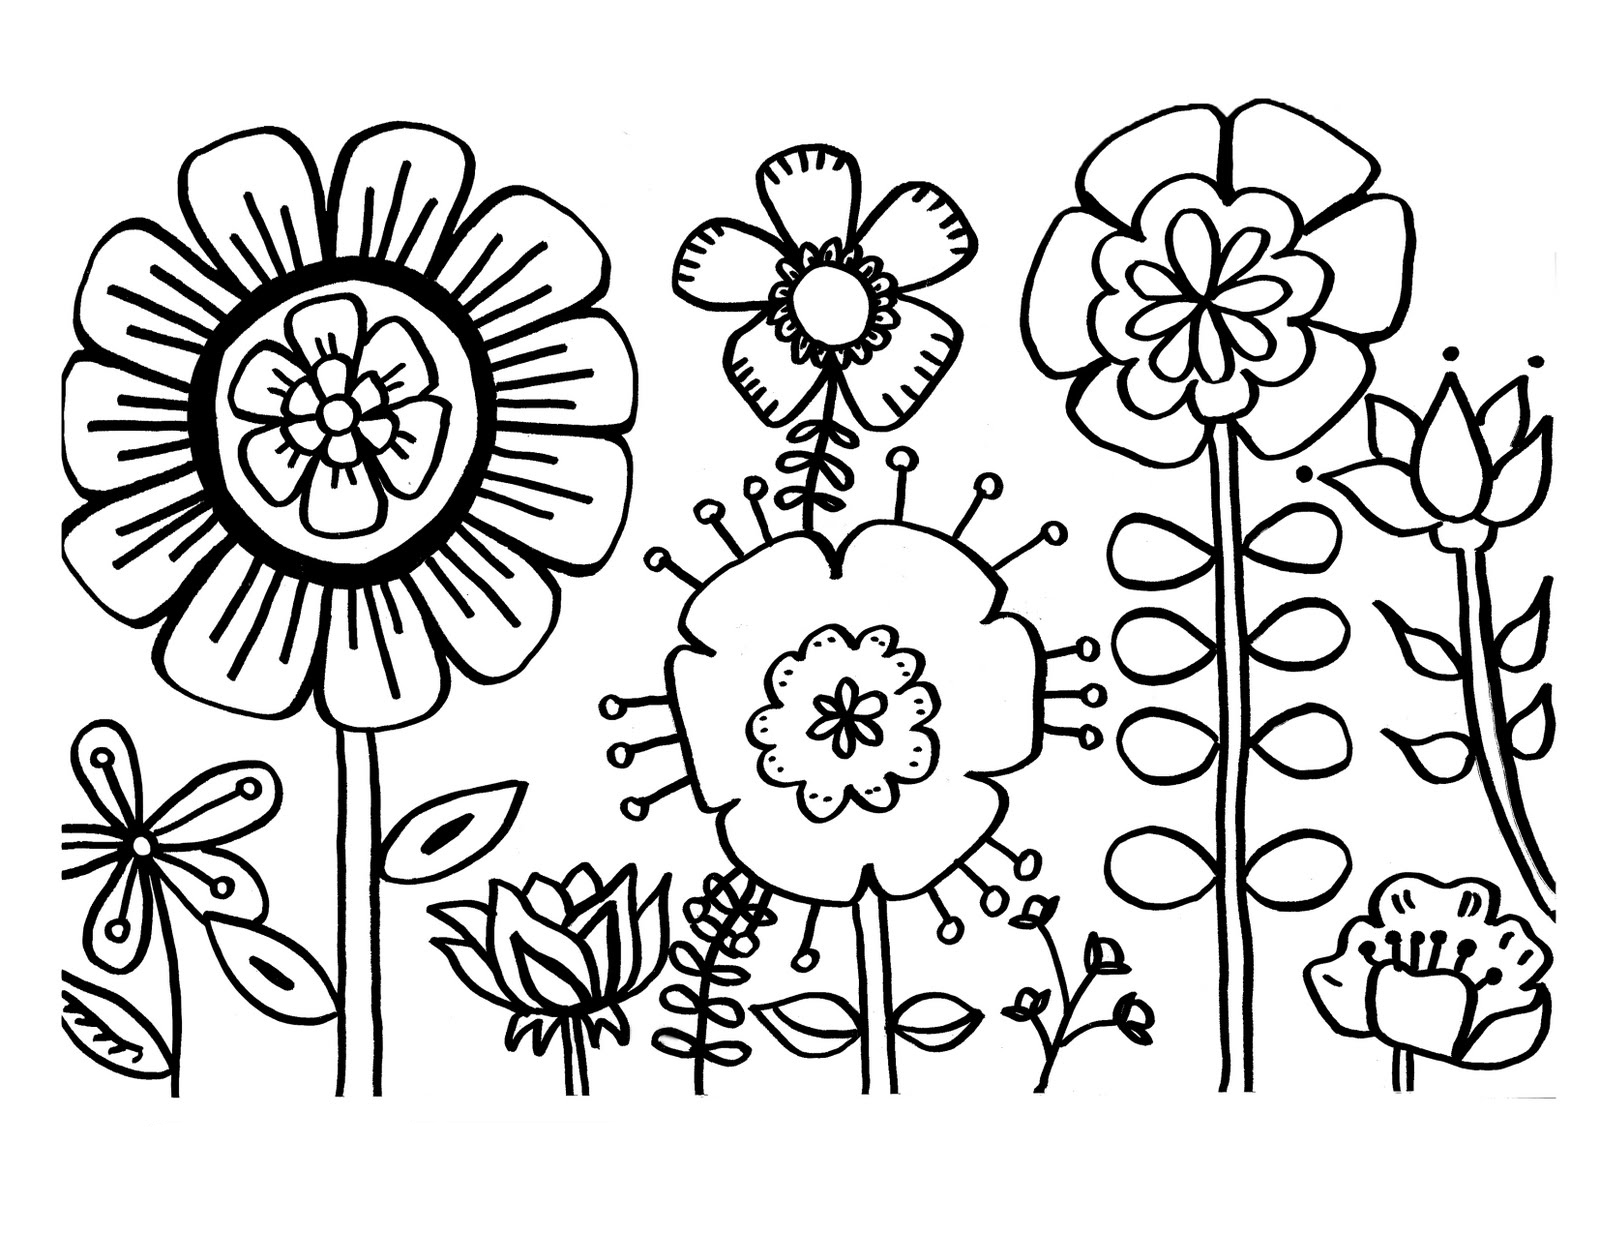 flower coloring pages for kids free printable flower coloring pages for kids best flower coloring for kids pages